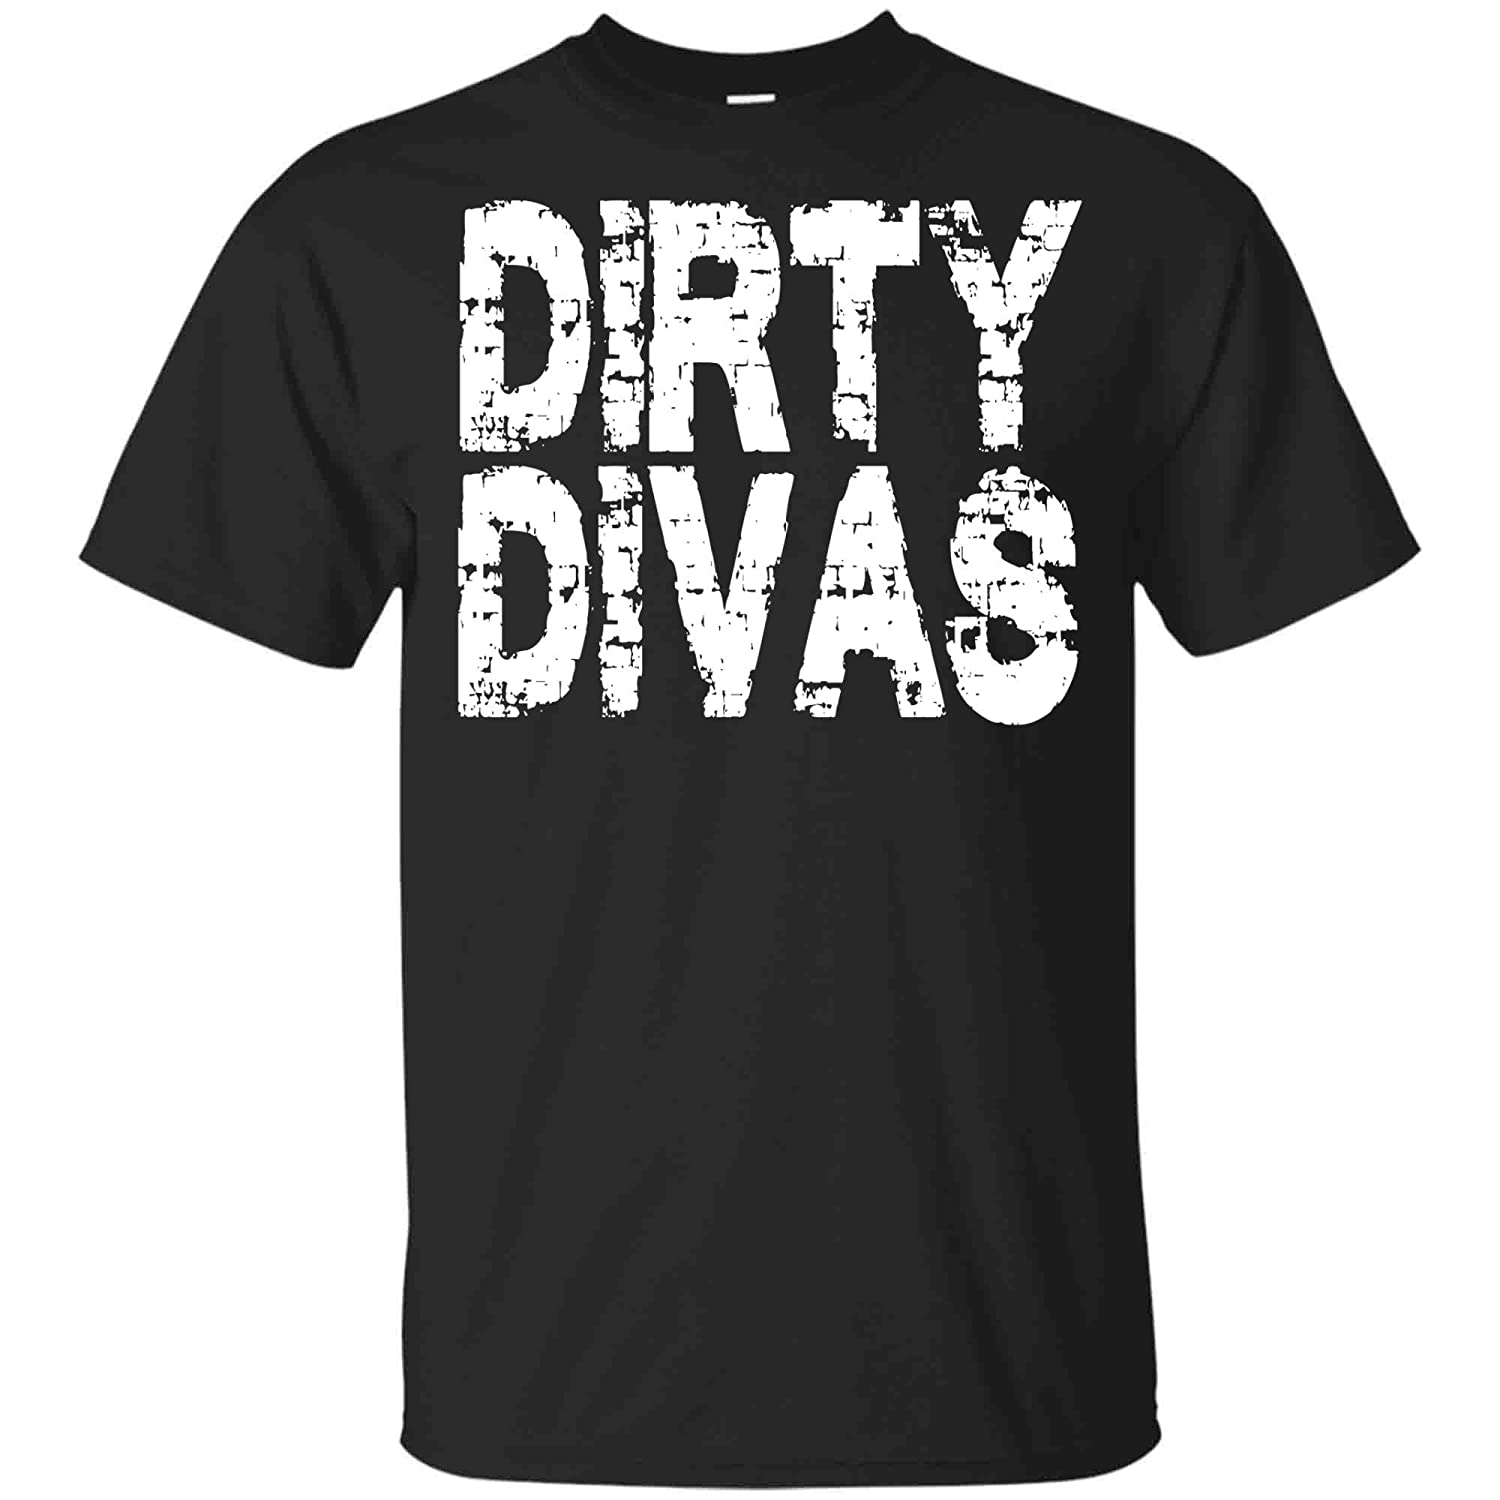 Unisex TShirt Black Medium KiraHome Womens Mud Run Team Shirt Marathon Runner Mudding Gift Dirty Divas Tank Top